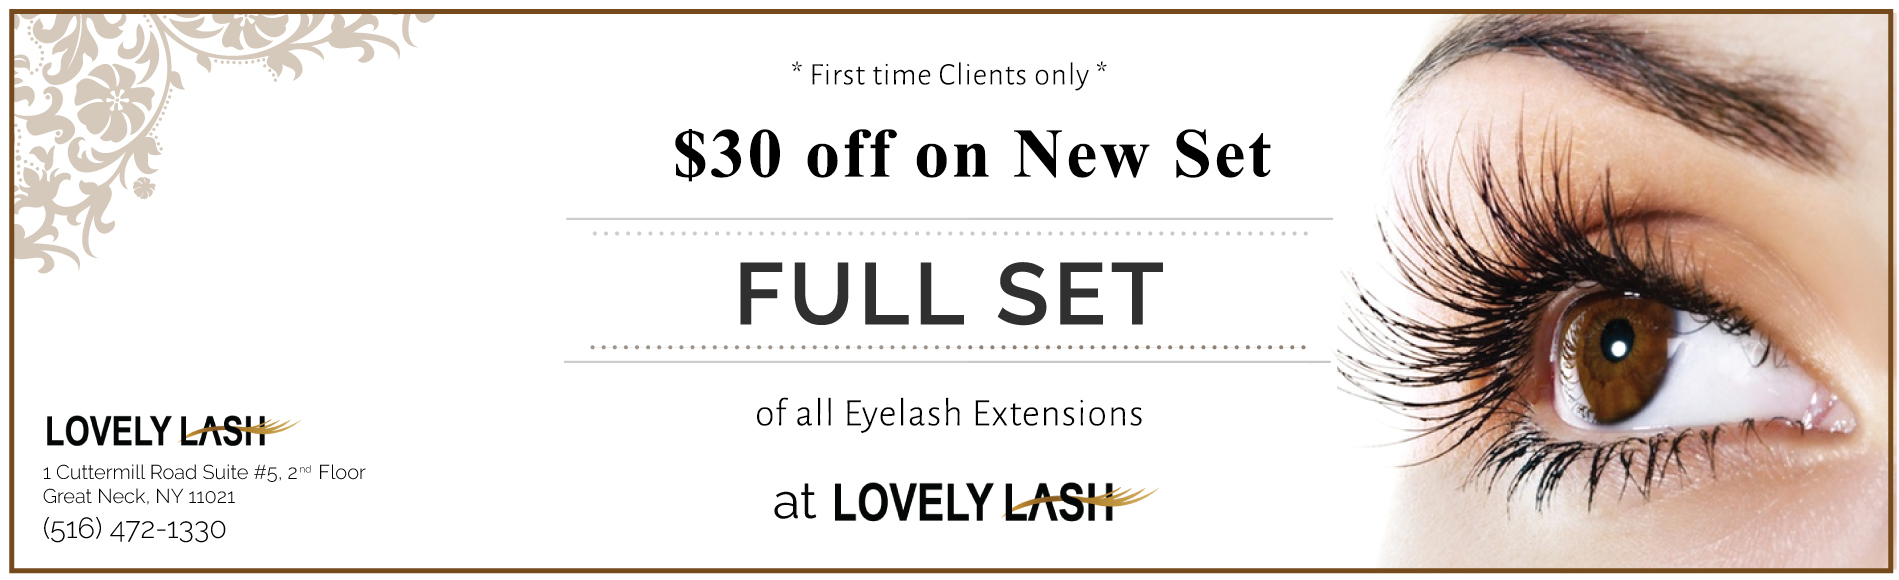 Lovely Lash Coupon Great Neck NY